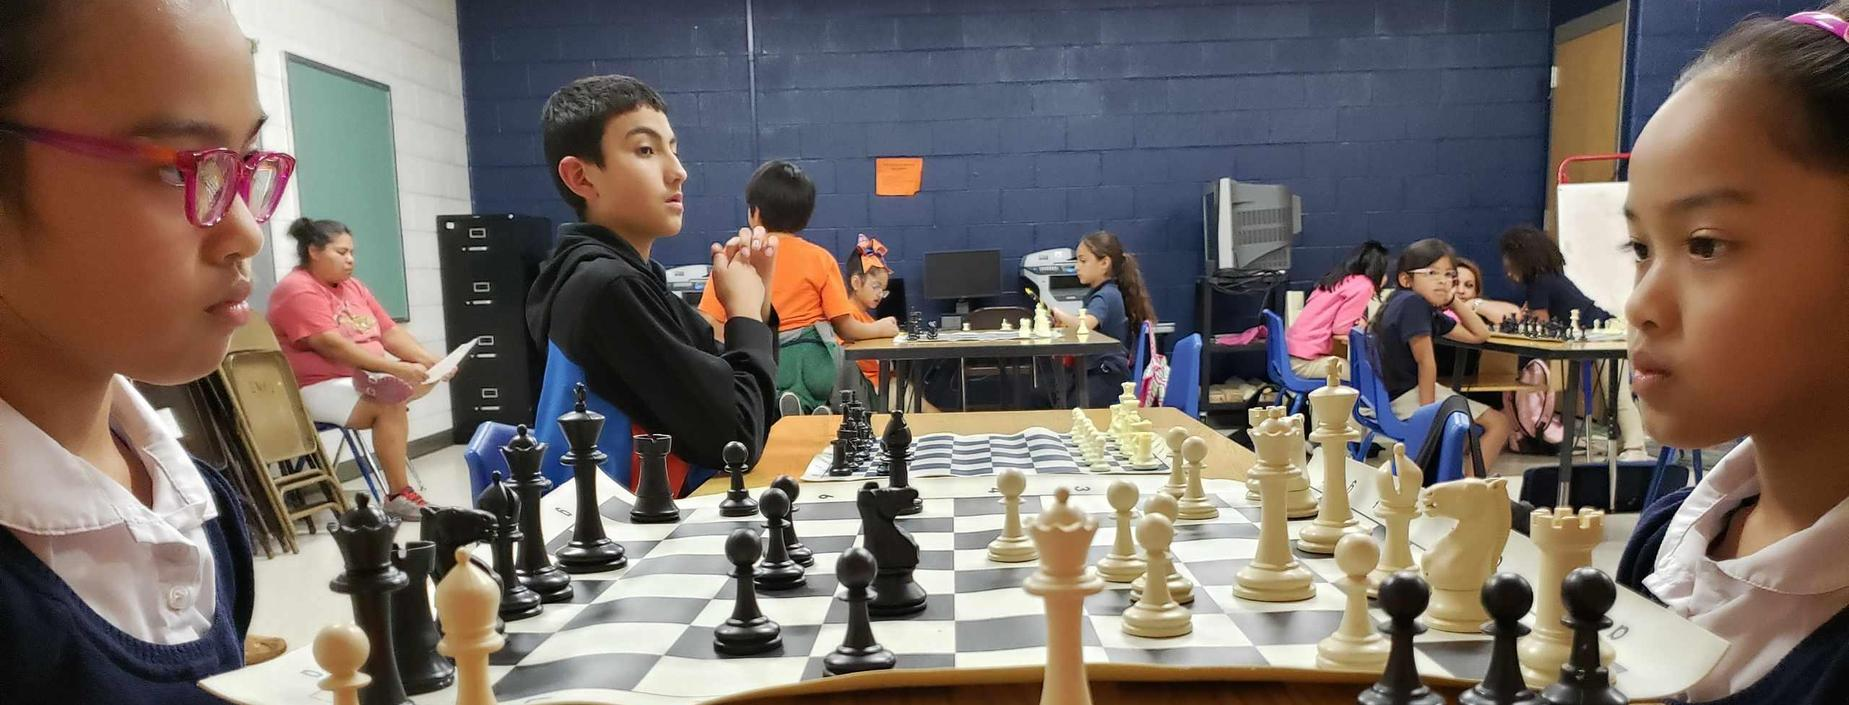 Students preparing for Chess Tournament during ACE Parent Open House